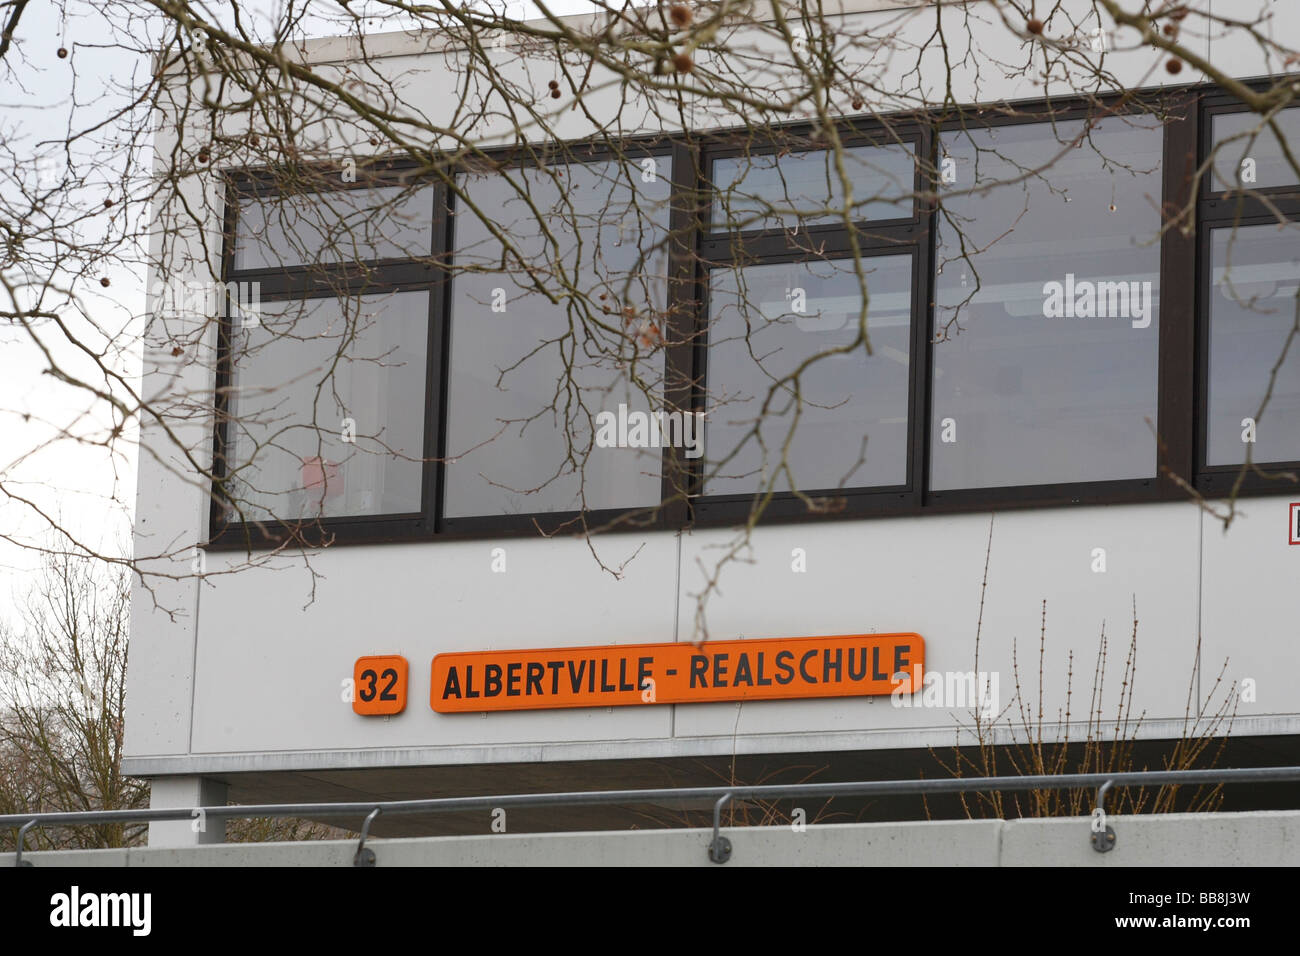 Rampage at Albertville-Realschule school, Winnenden, Baden-Wuerttemberg, Germany, Europe Stock Photo